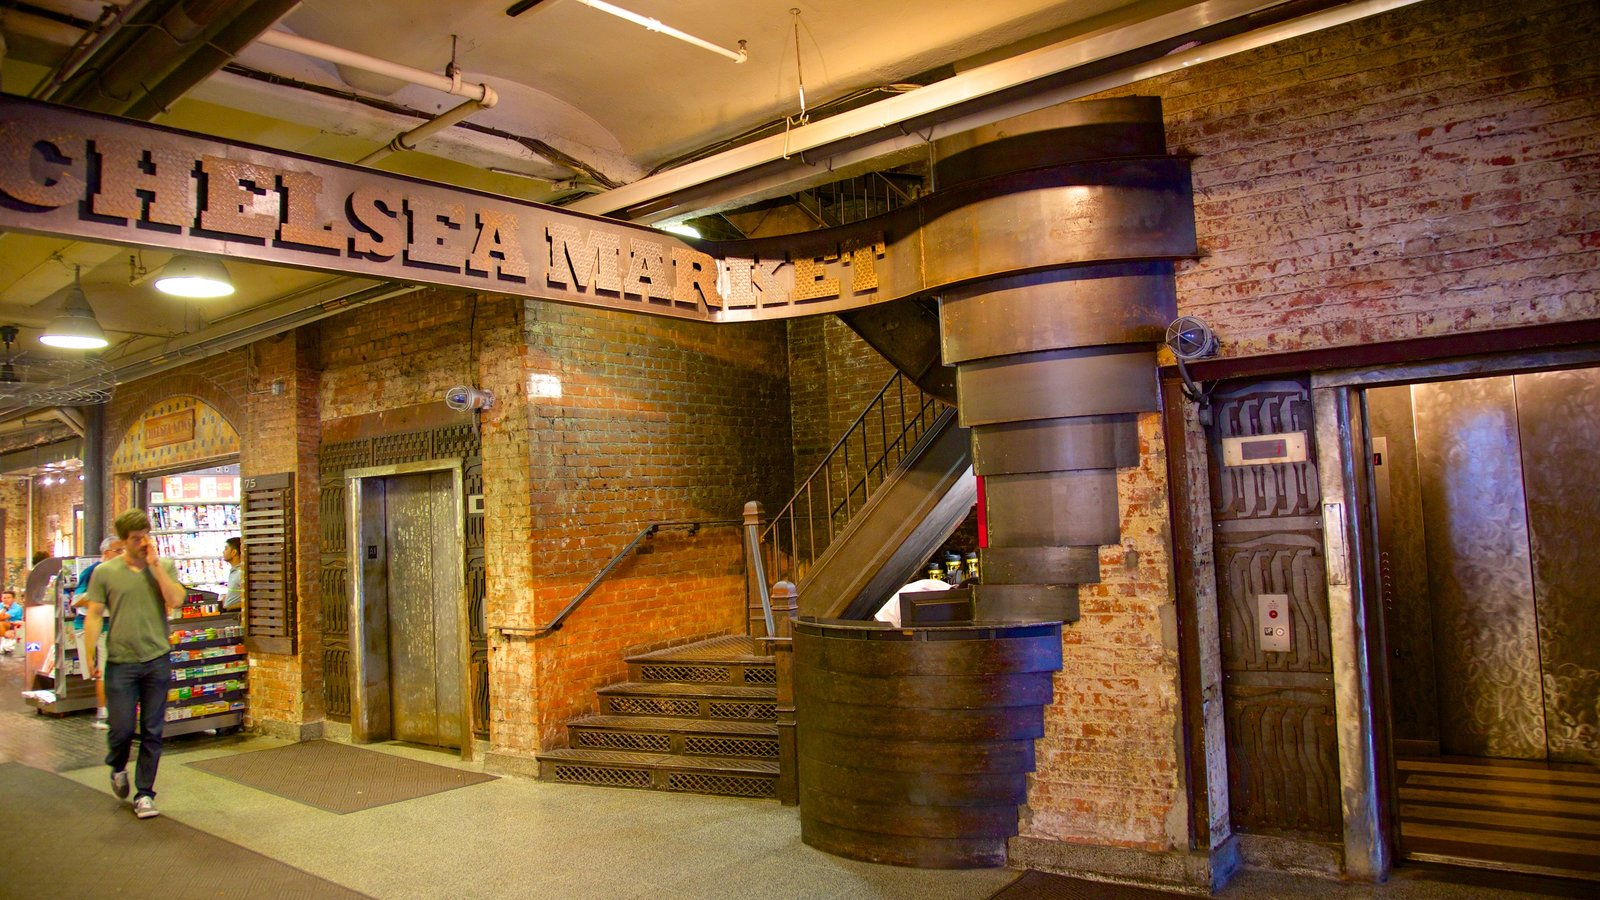 Chelsea Market shopping pictures: view images of chelsea market